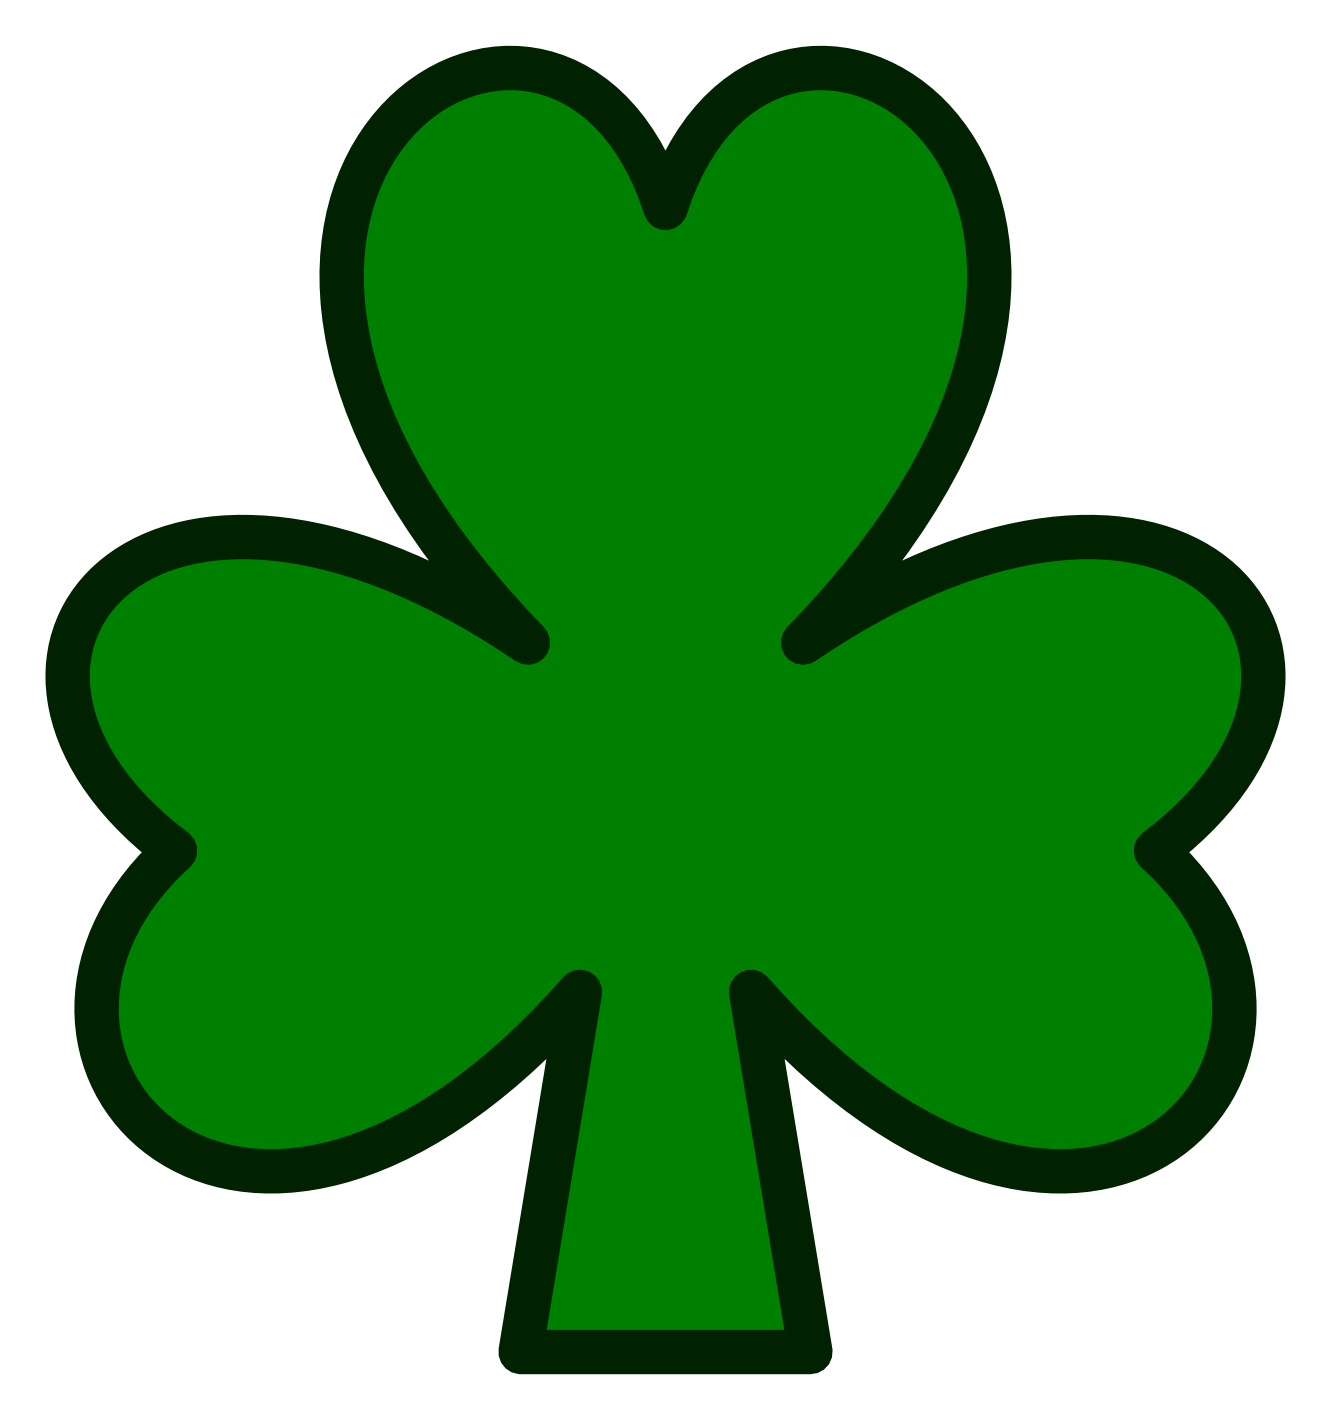 Shamrock clipart #8, Download drawings